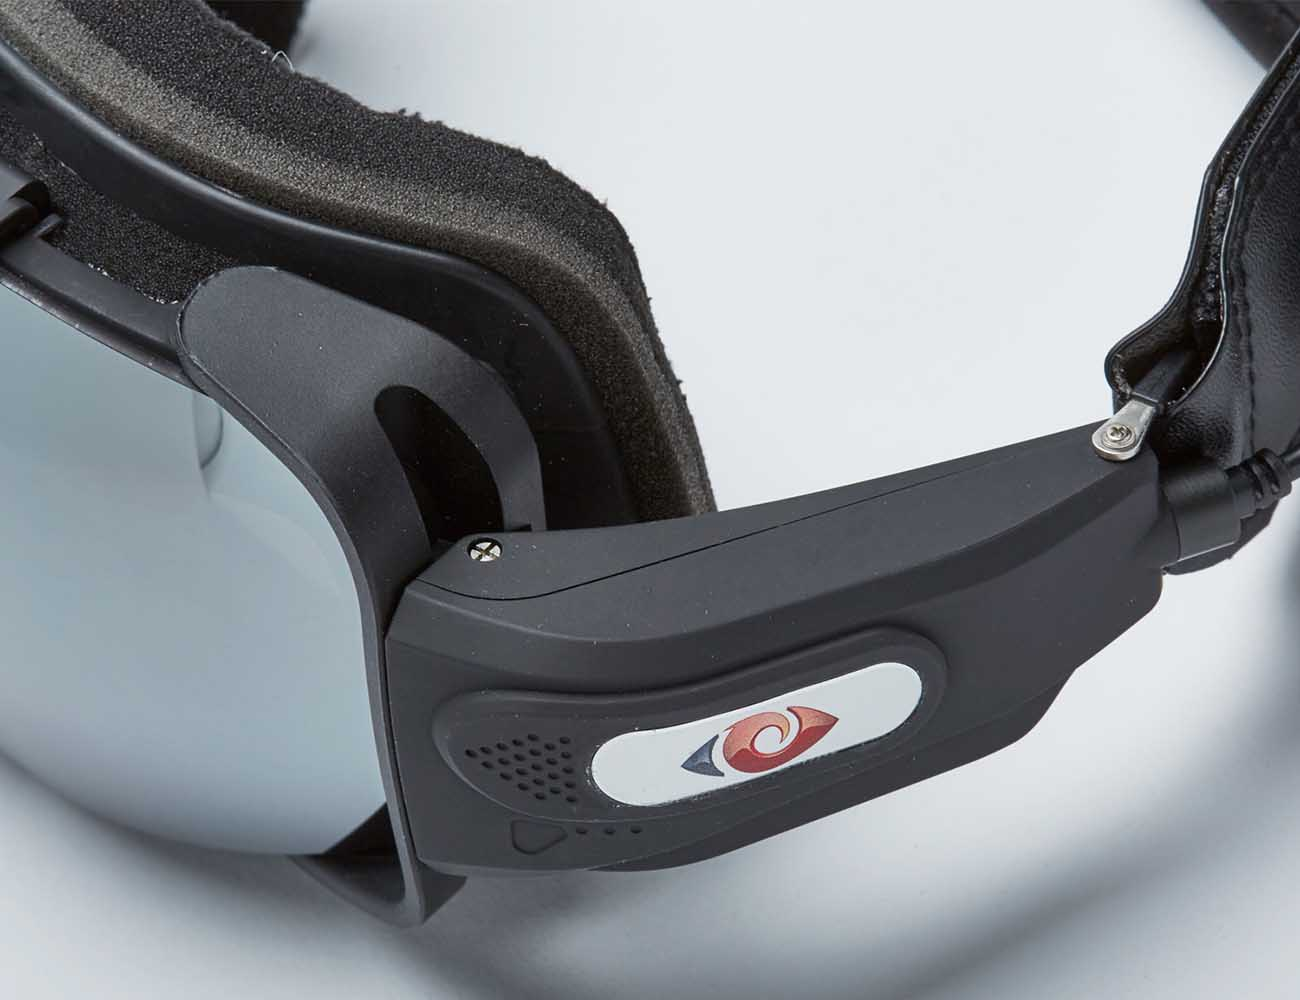 Avalanche 1080 Snow Goggles by Cyclops Gear